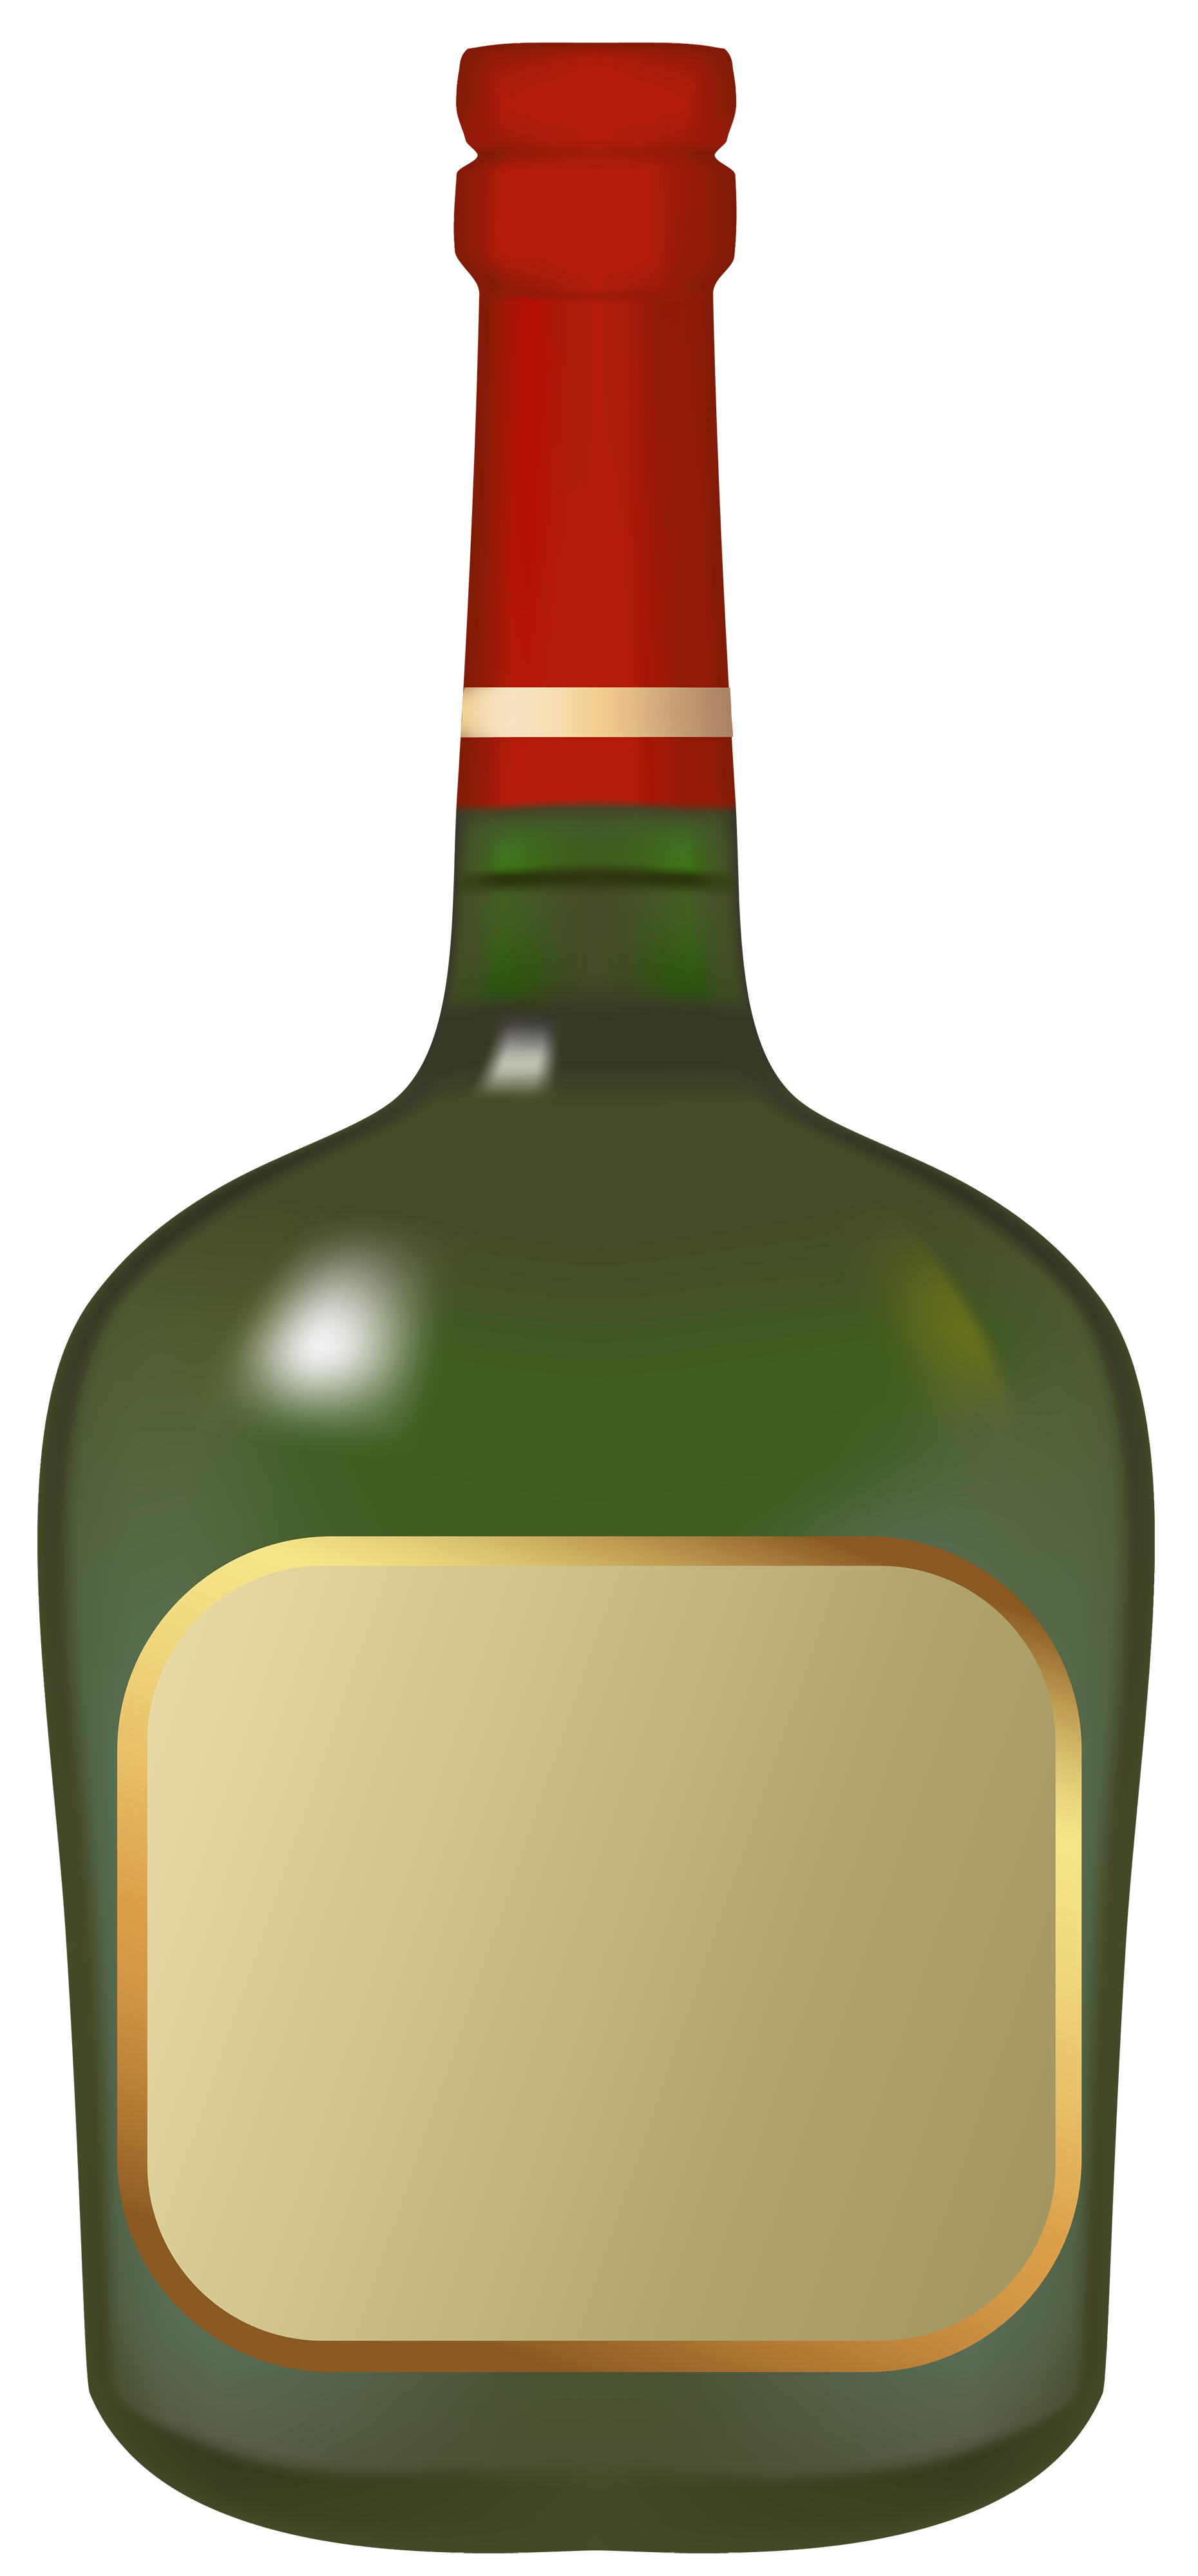 Italian clipart item. Liquor bottle png best